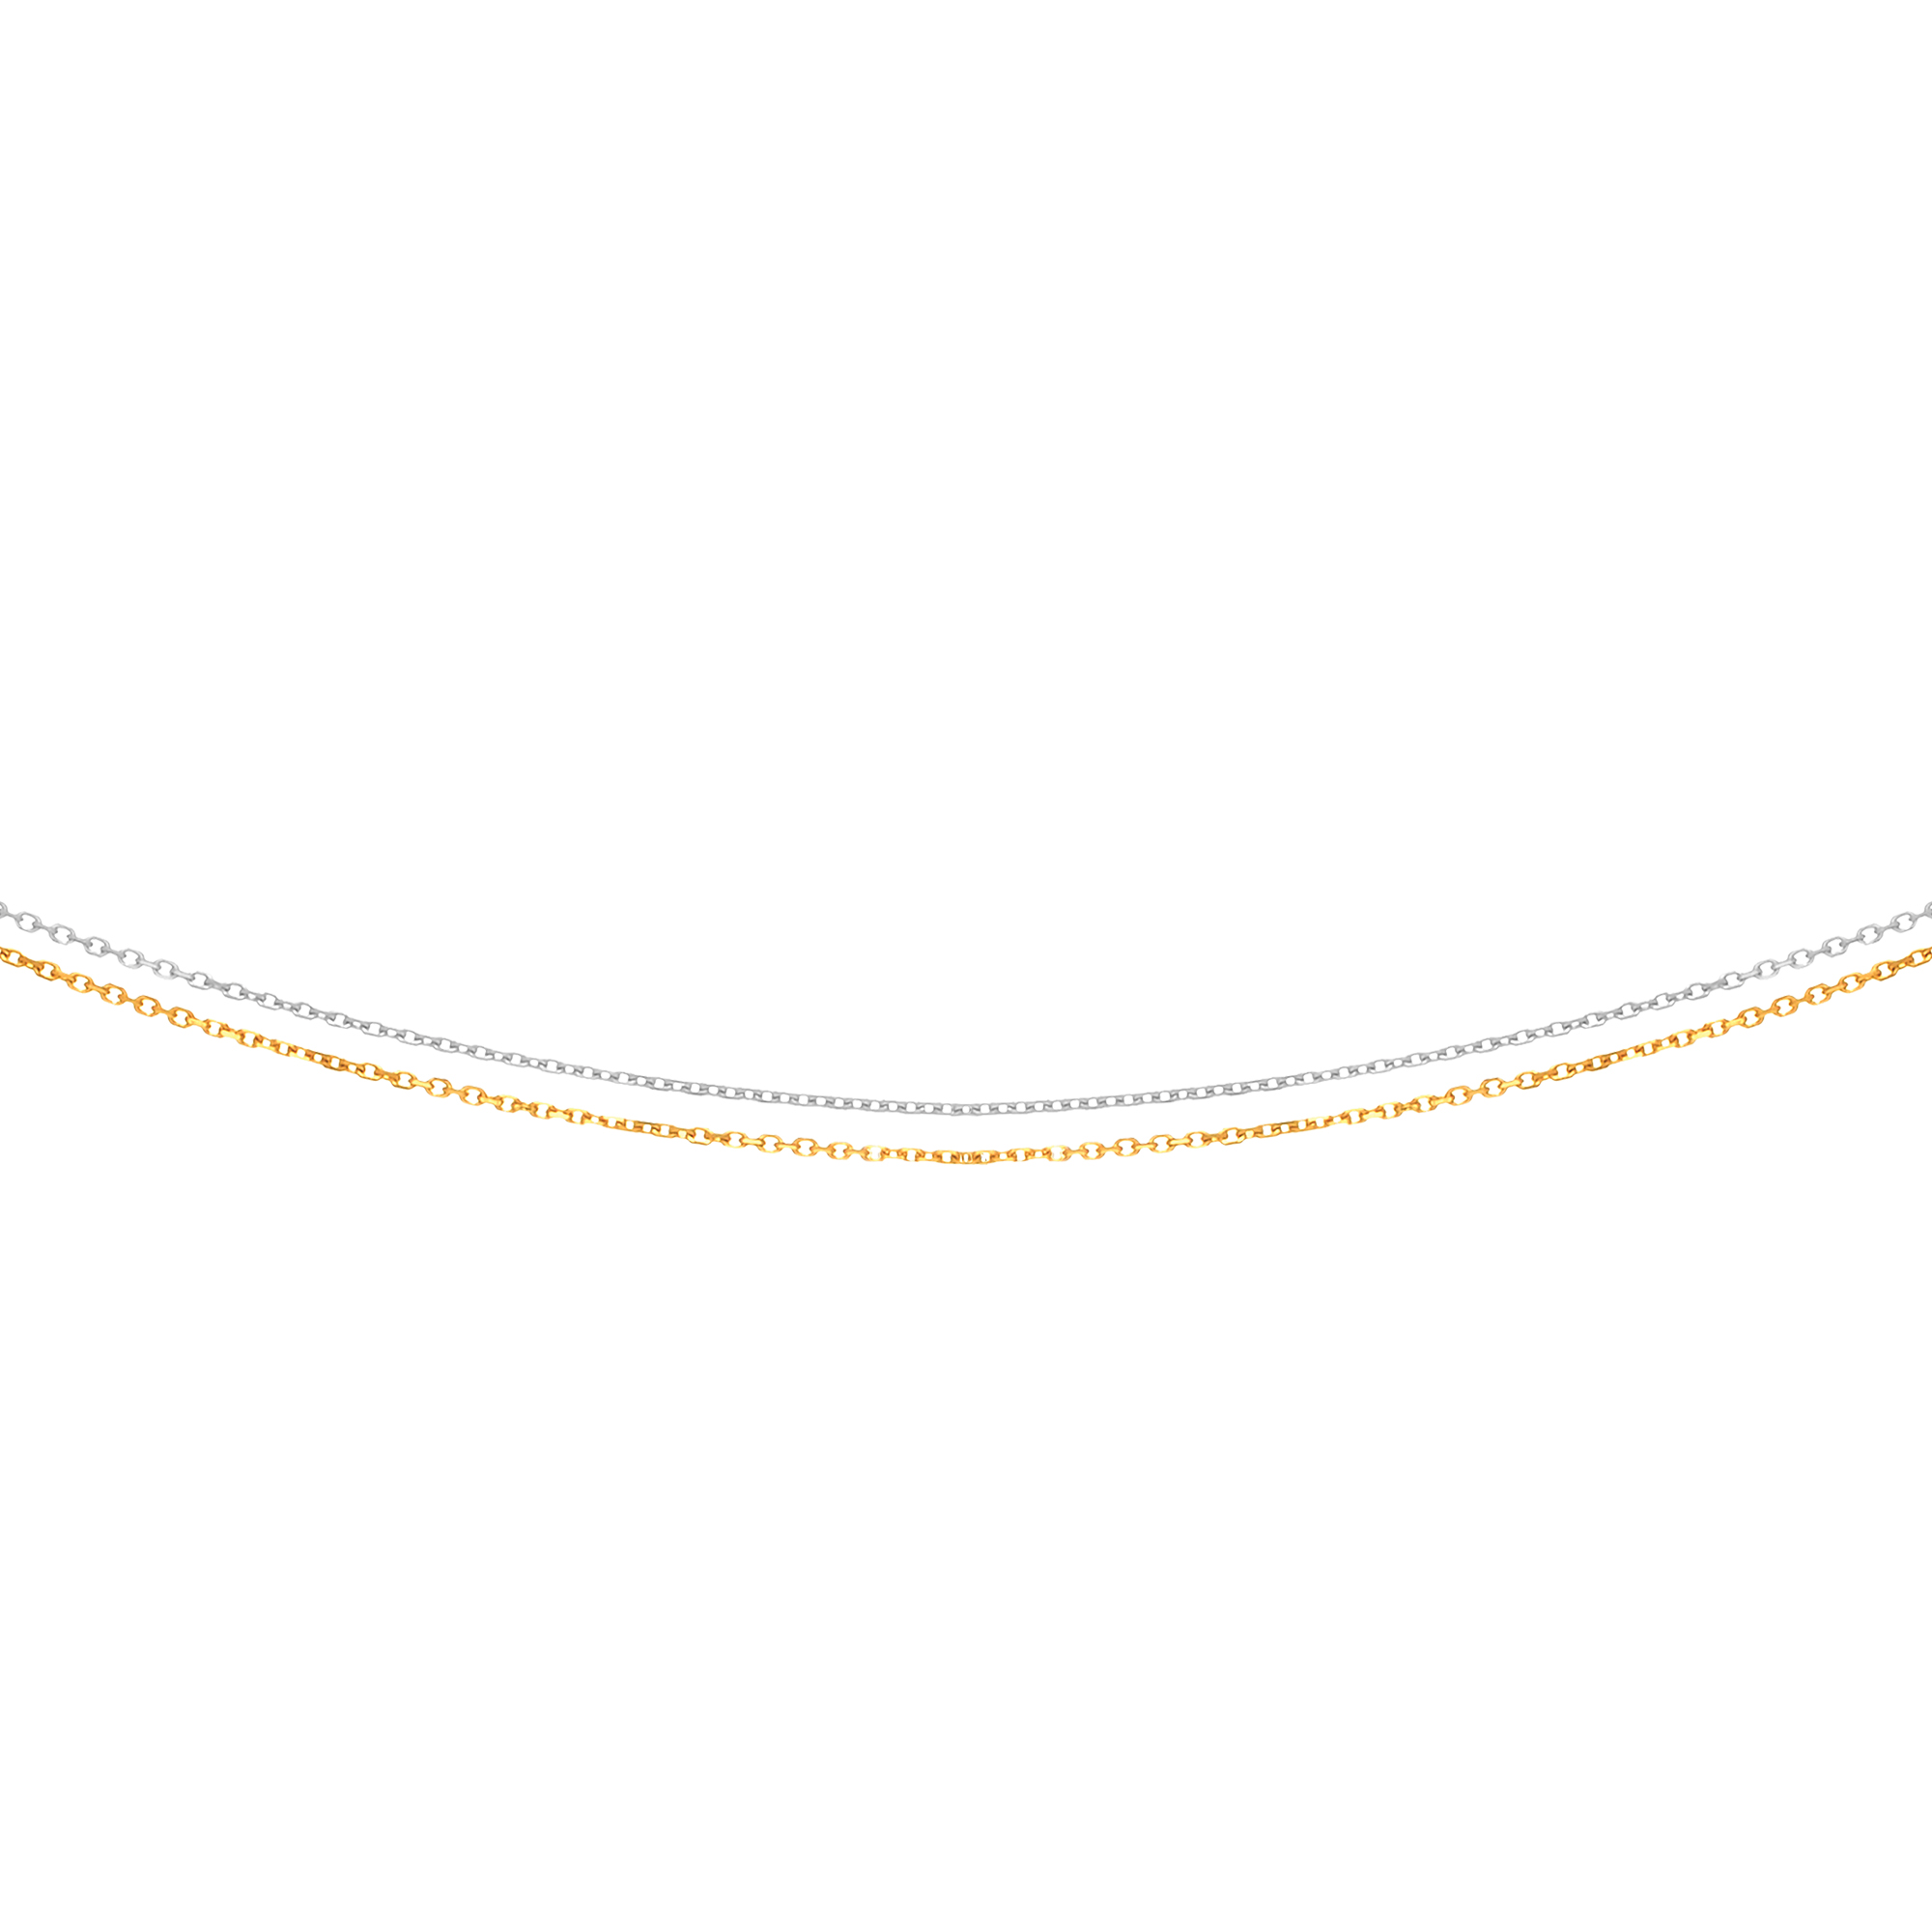 LUXURMAN Solid 14k Gold Cable Chain For Women 2 Strand 1.1mm Wide